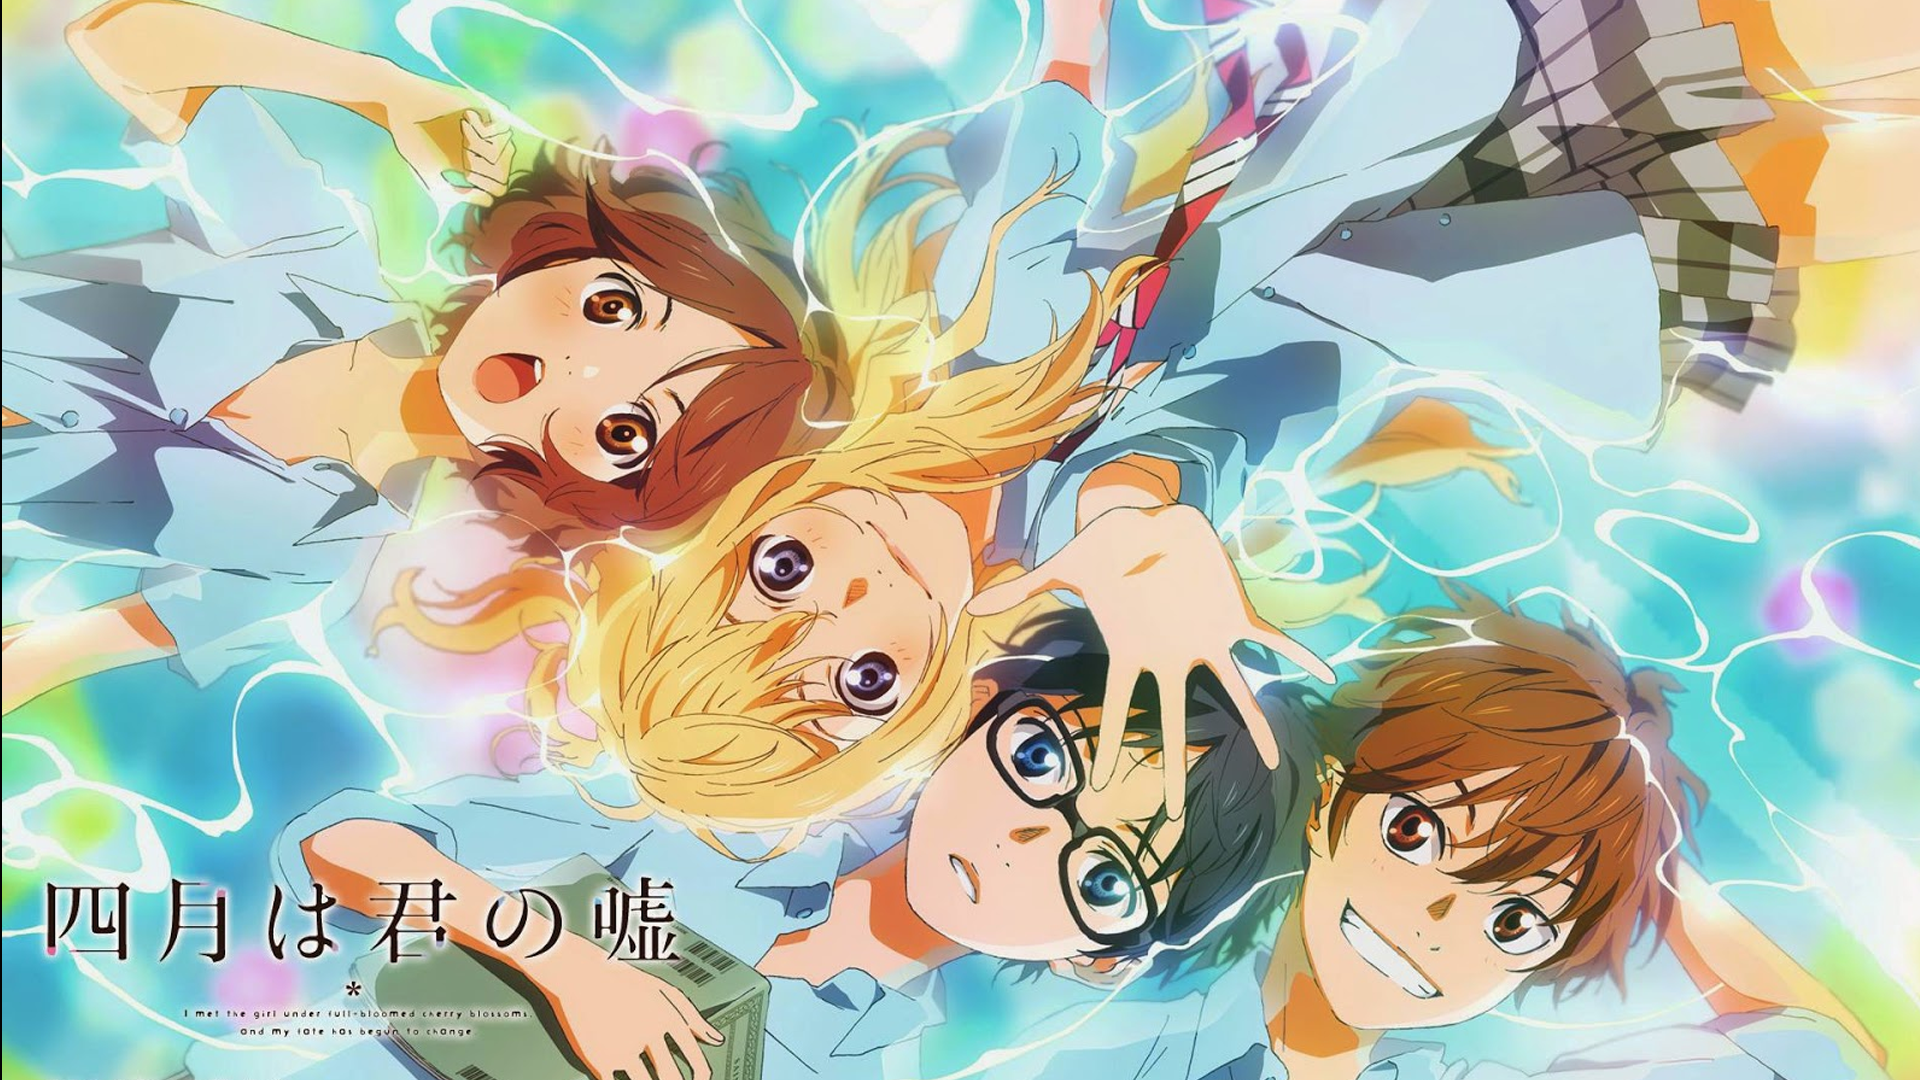 Your Lie In April Backgrounds, Compatible - PC, Mobile, Gadgets| 1920x1080 px